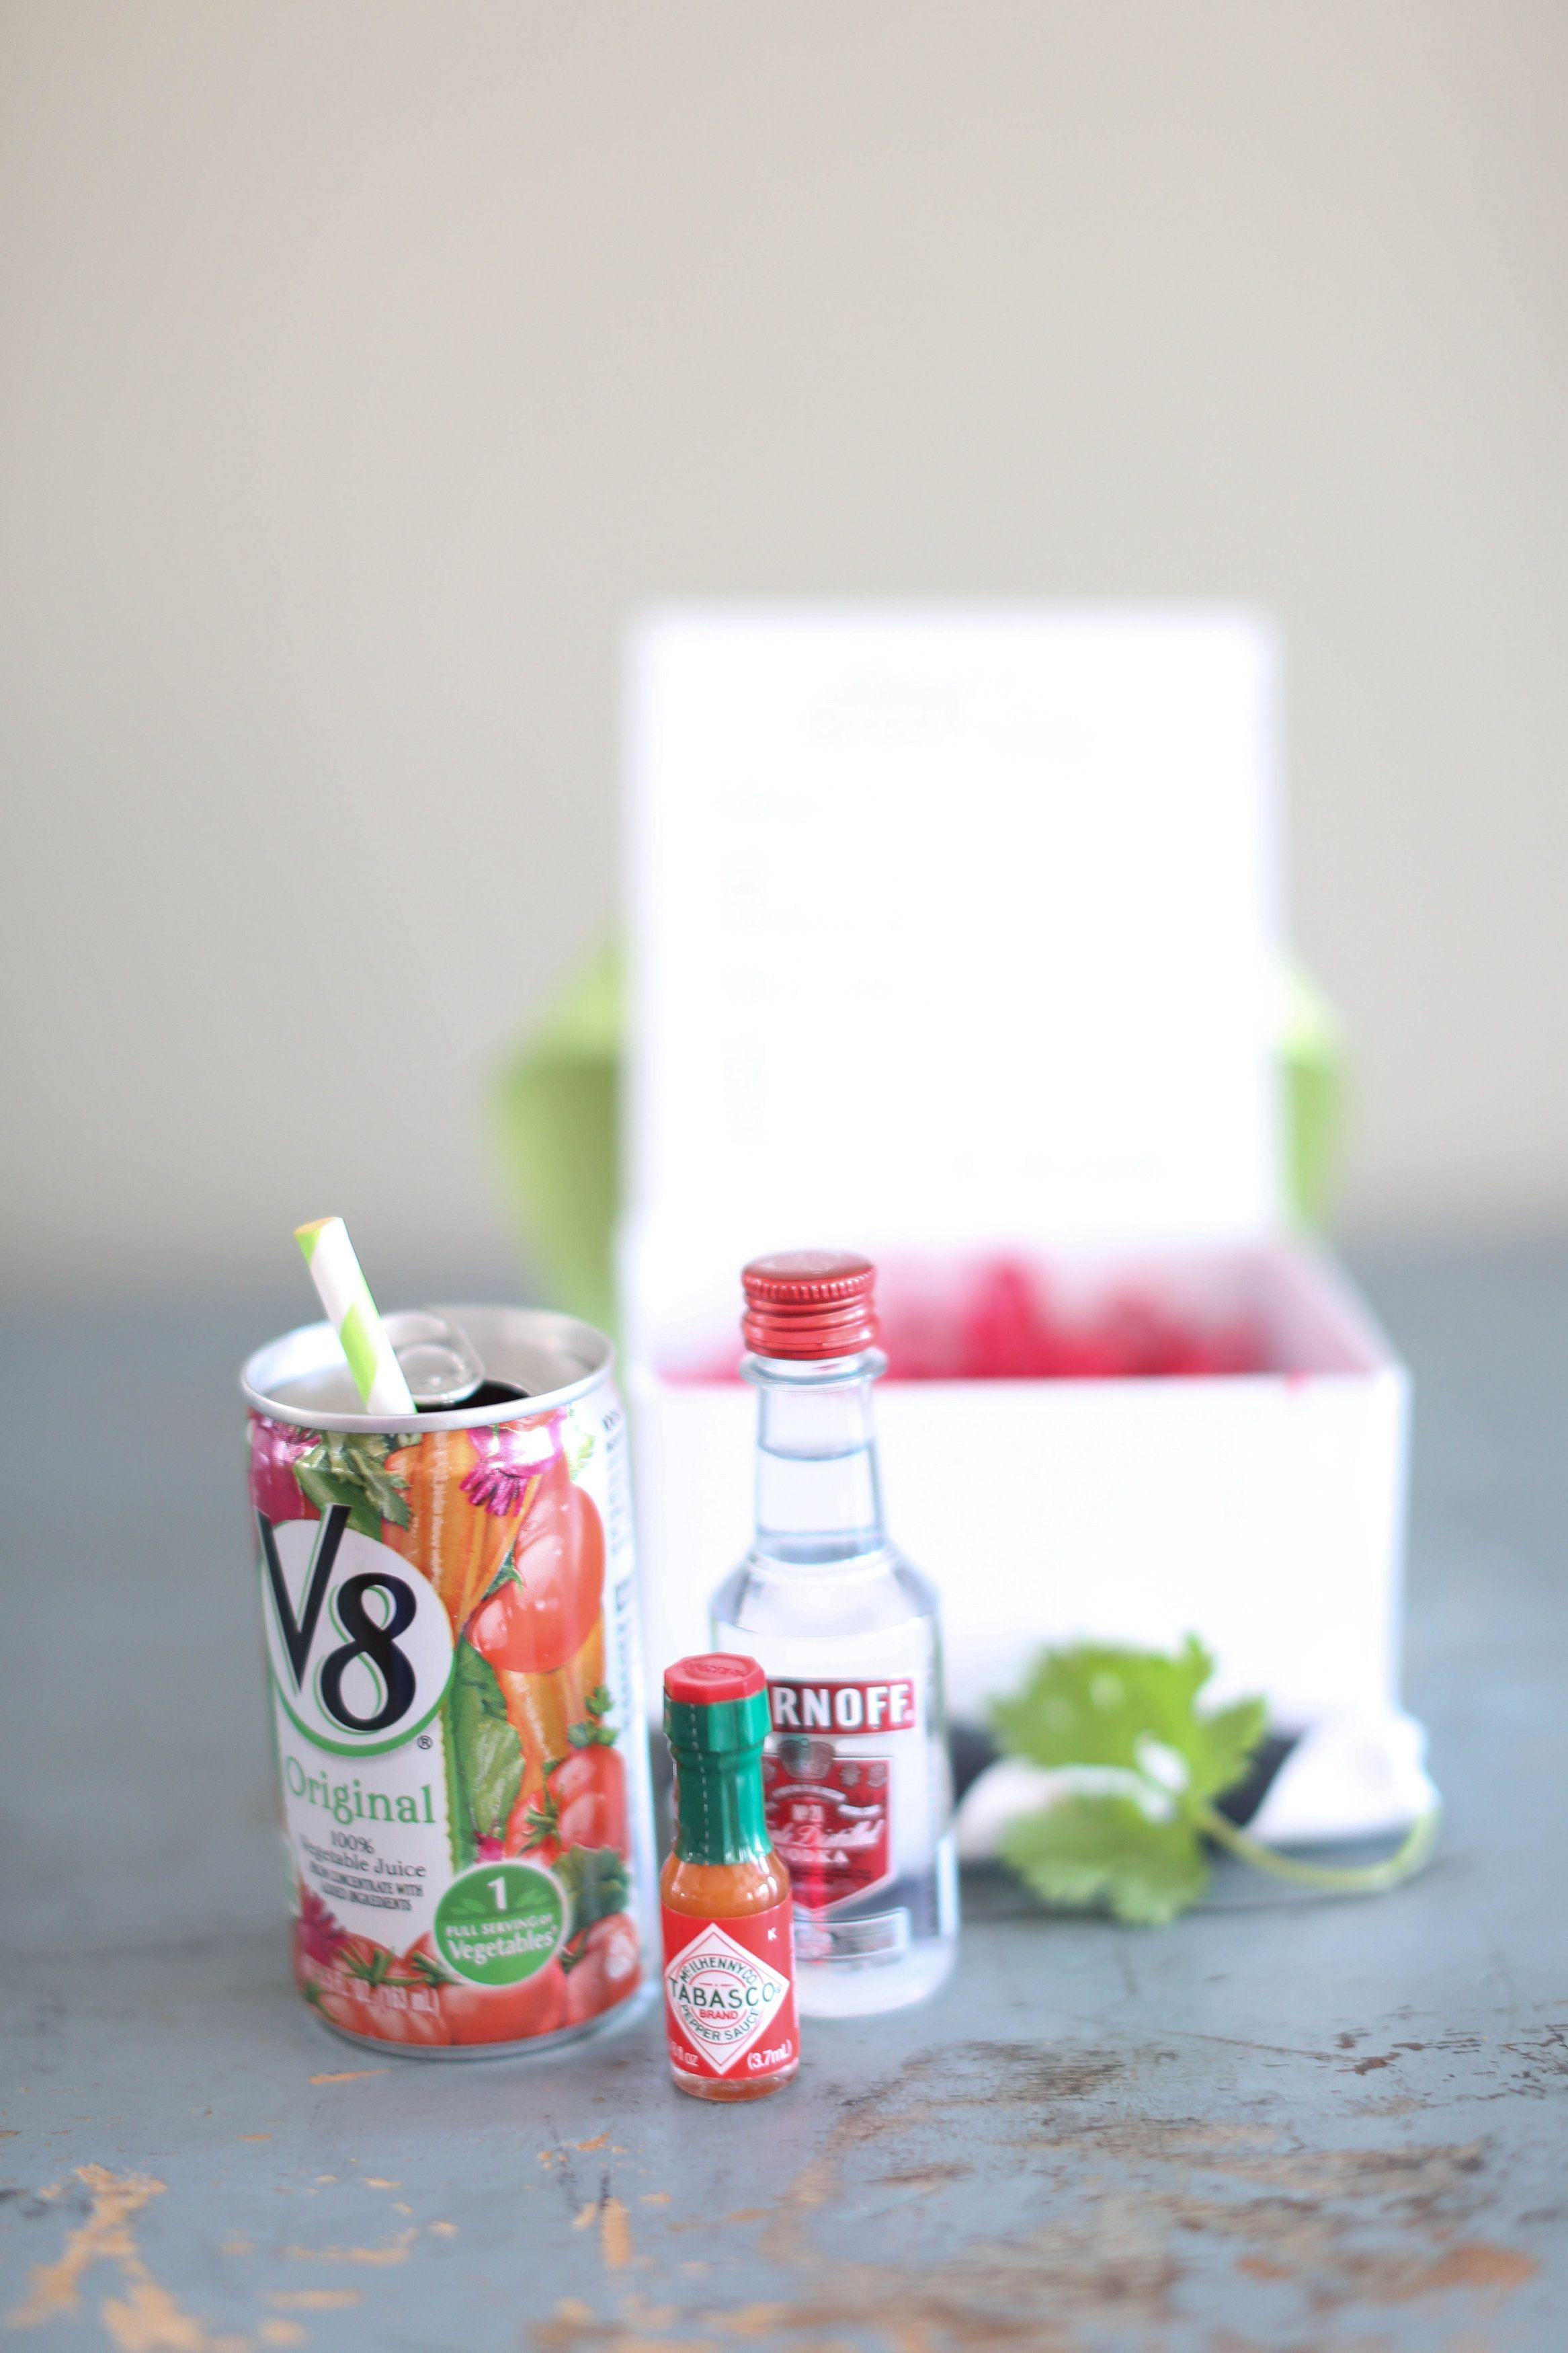 Adorable Mini Bloody Mary Kit For Vegas Wedding Welcome Bags Love The Teensy Tiny Tabasco